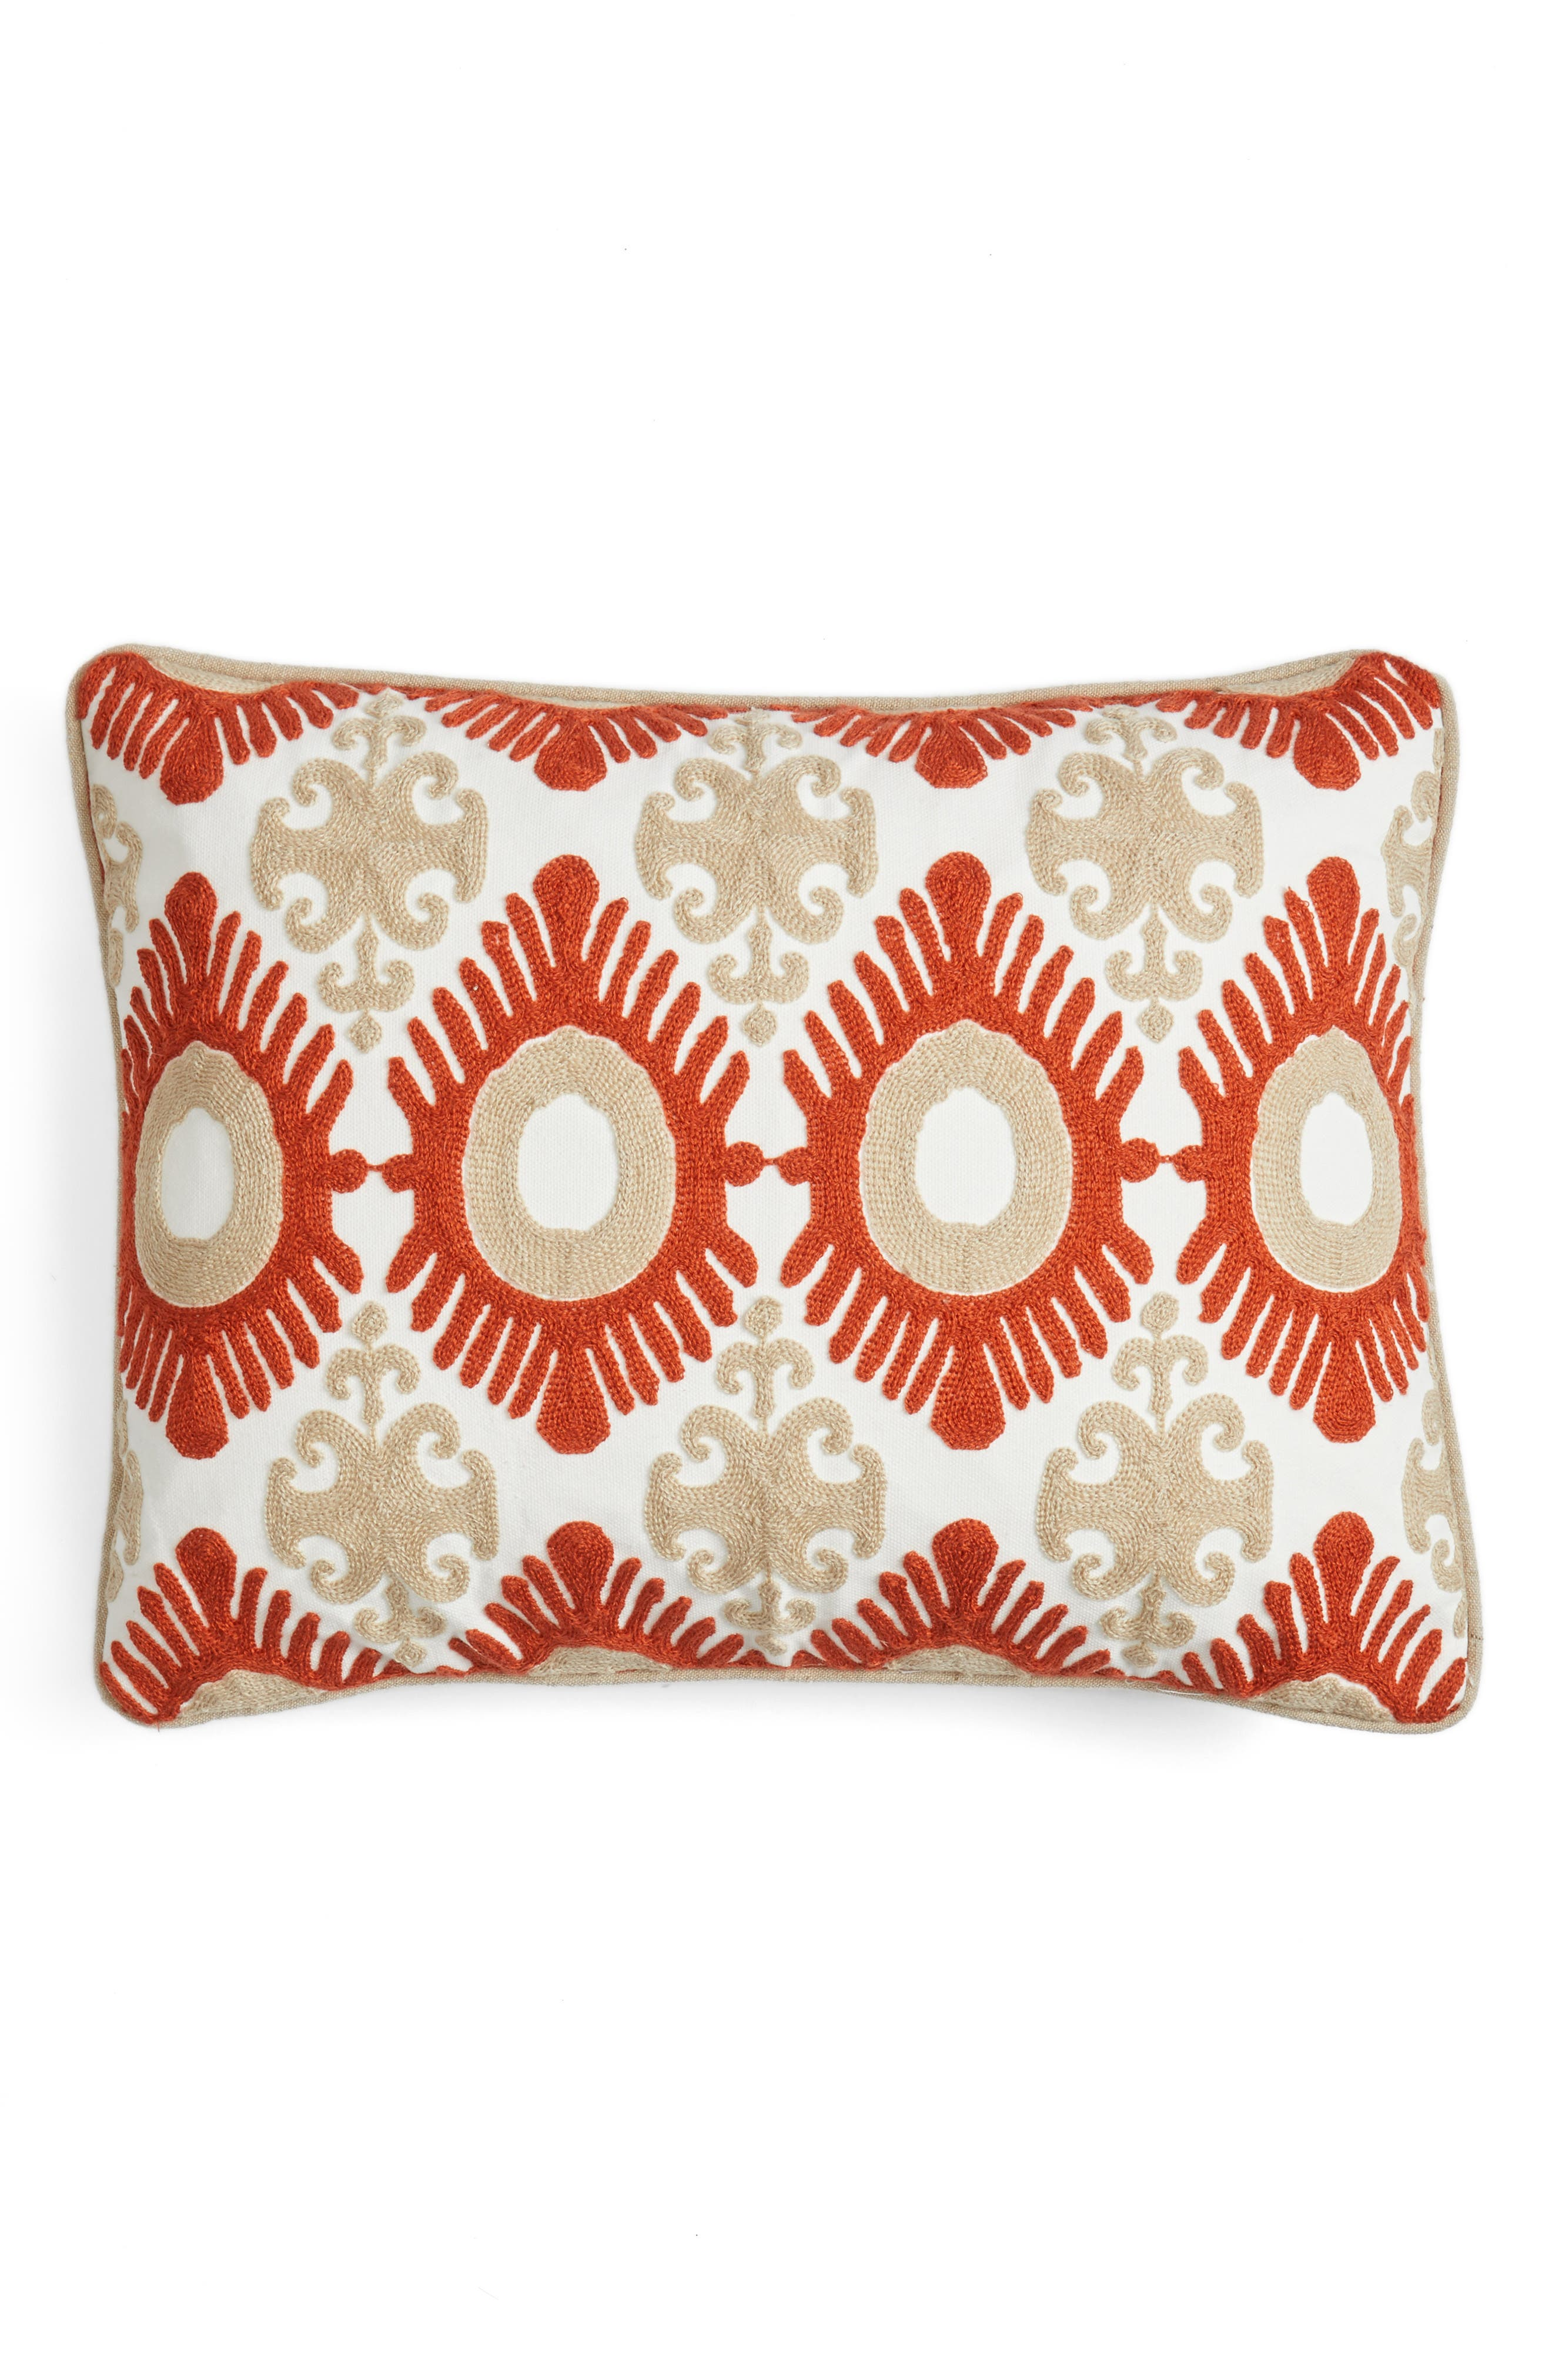 Alternate Image 1 Selected - Levtex Fira Crewel Stitch Accent Pillow